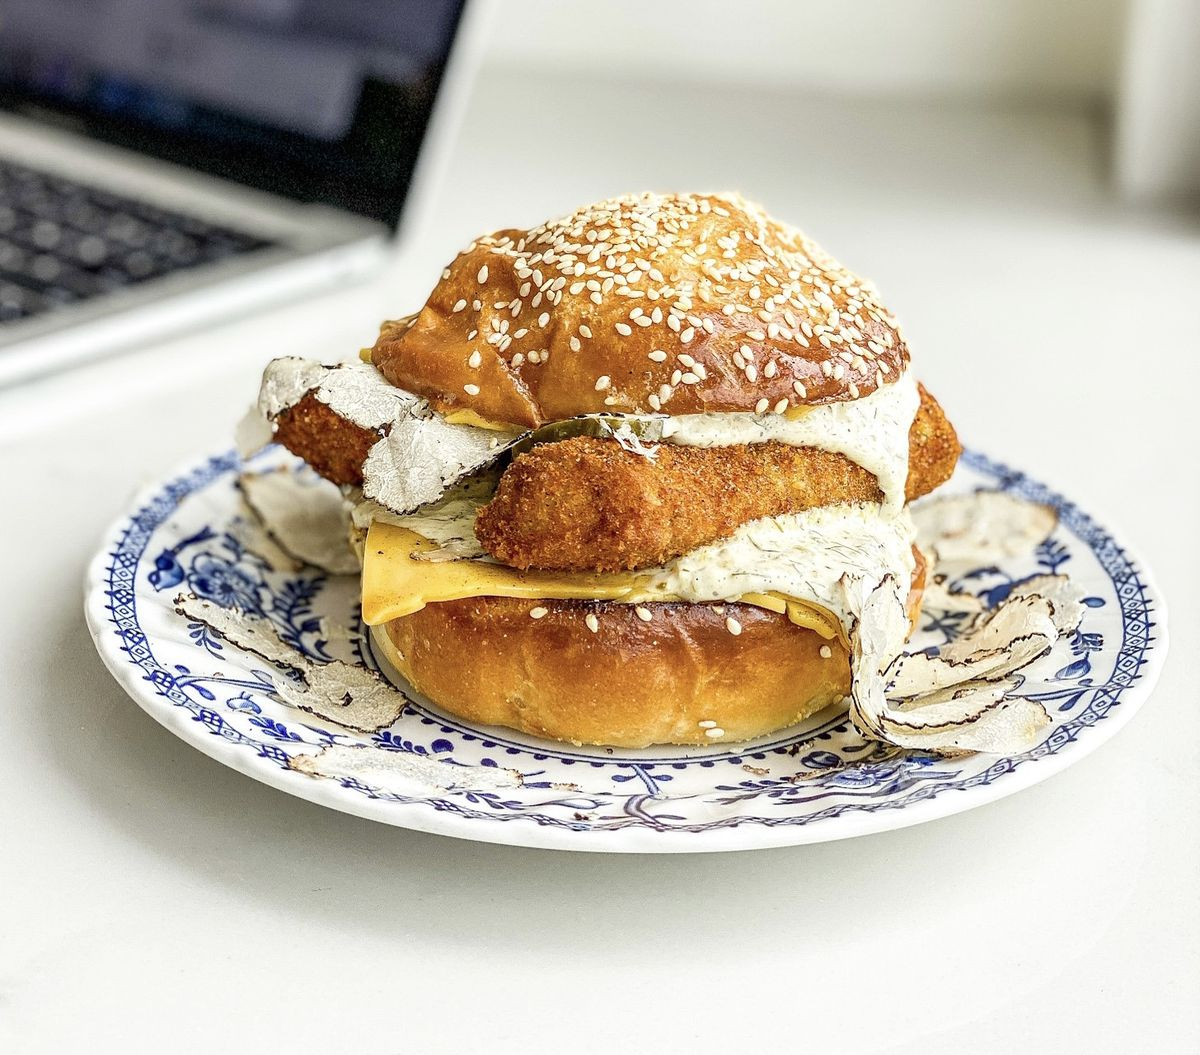 Cod sandwich from Oui Melrose in Hollywood.